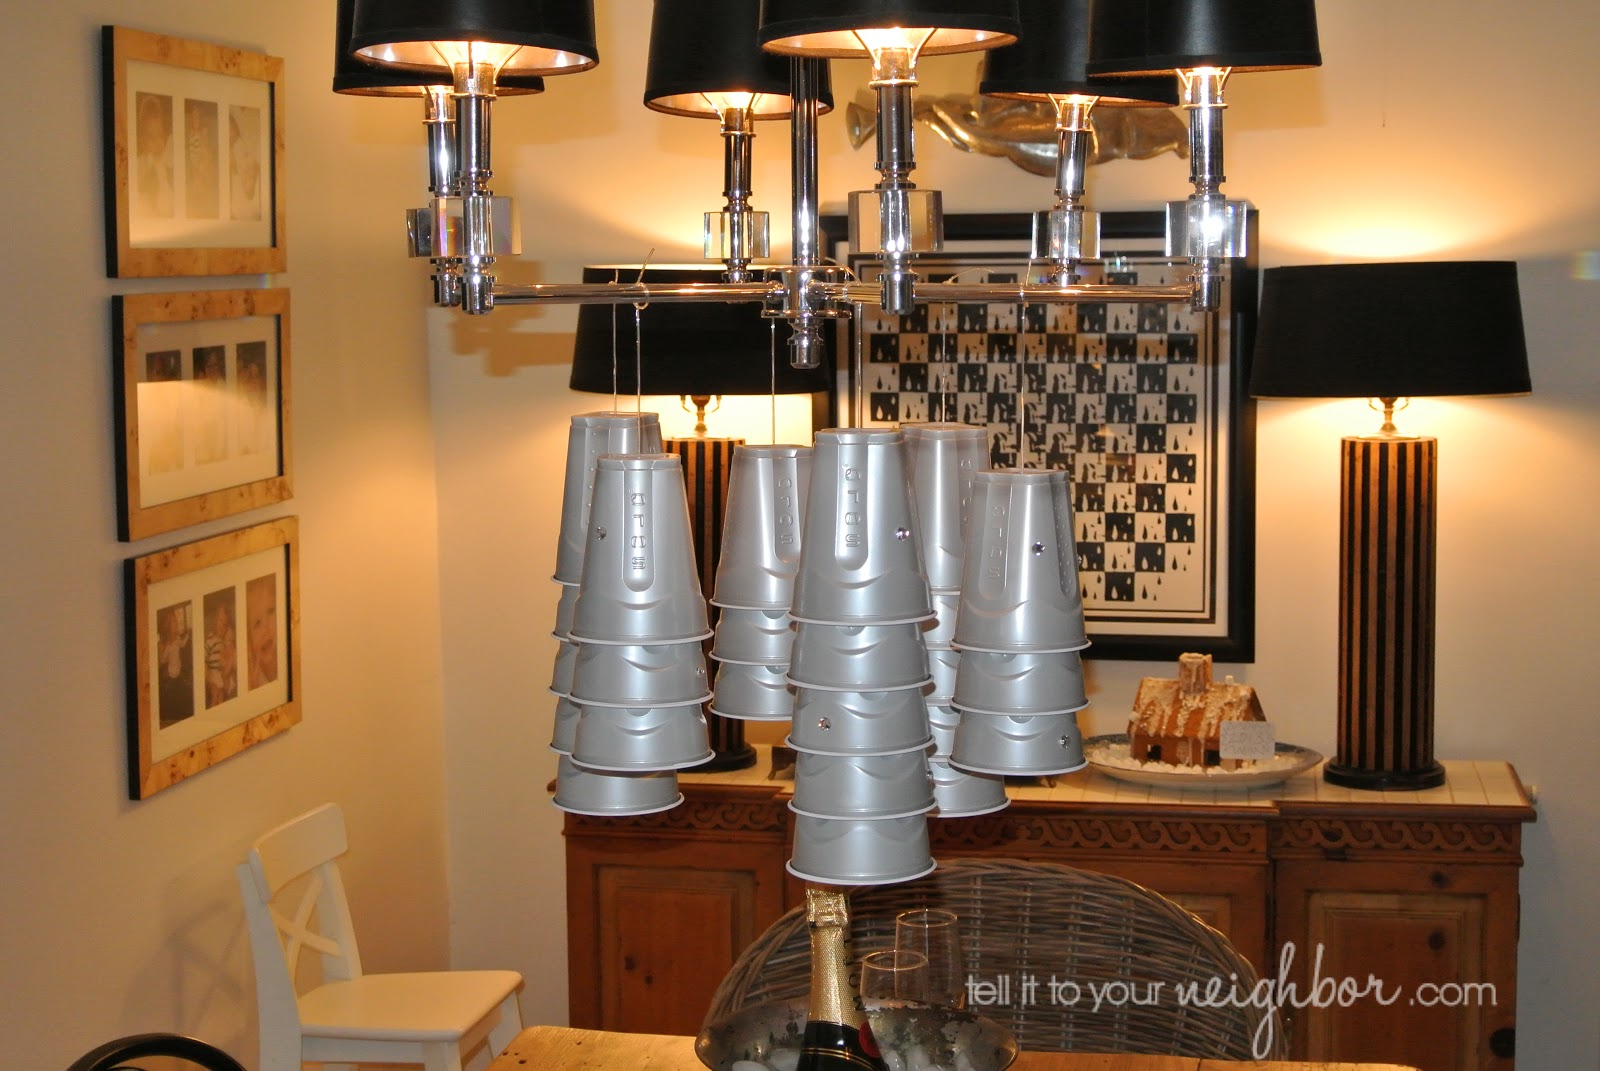 Tell it to your neighbor new years solo cup chandelier im on a real solo cup kick and i was trying to come up with a new use for the cup as a party decoration how about hanging cups arubaitofo Image collections